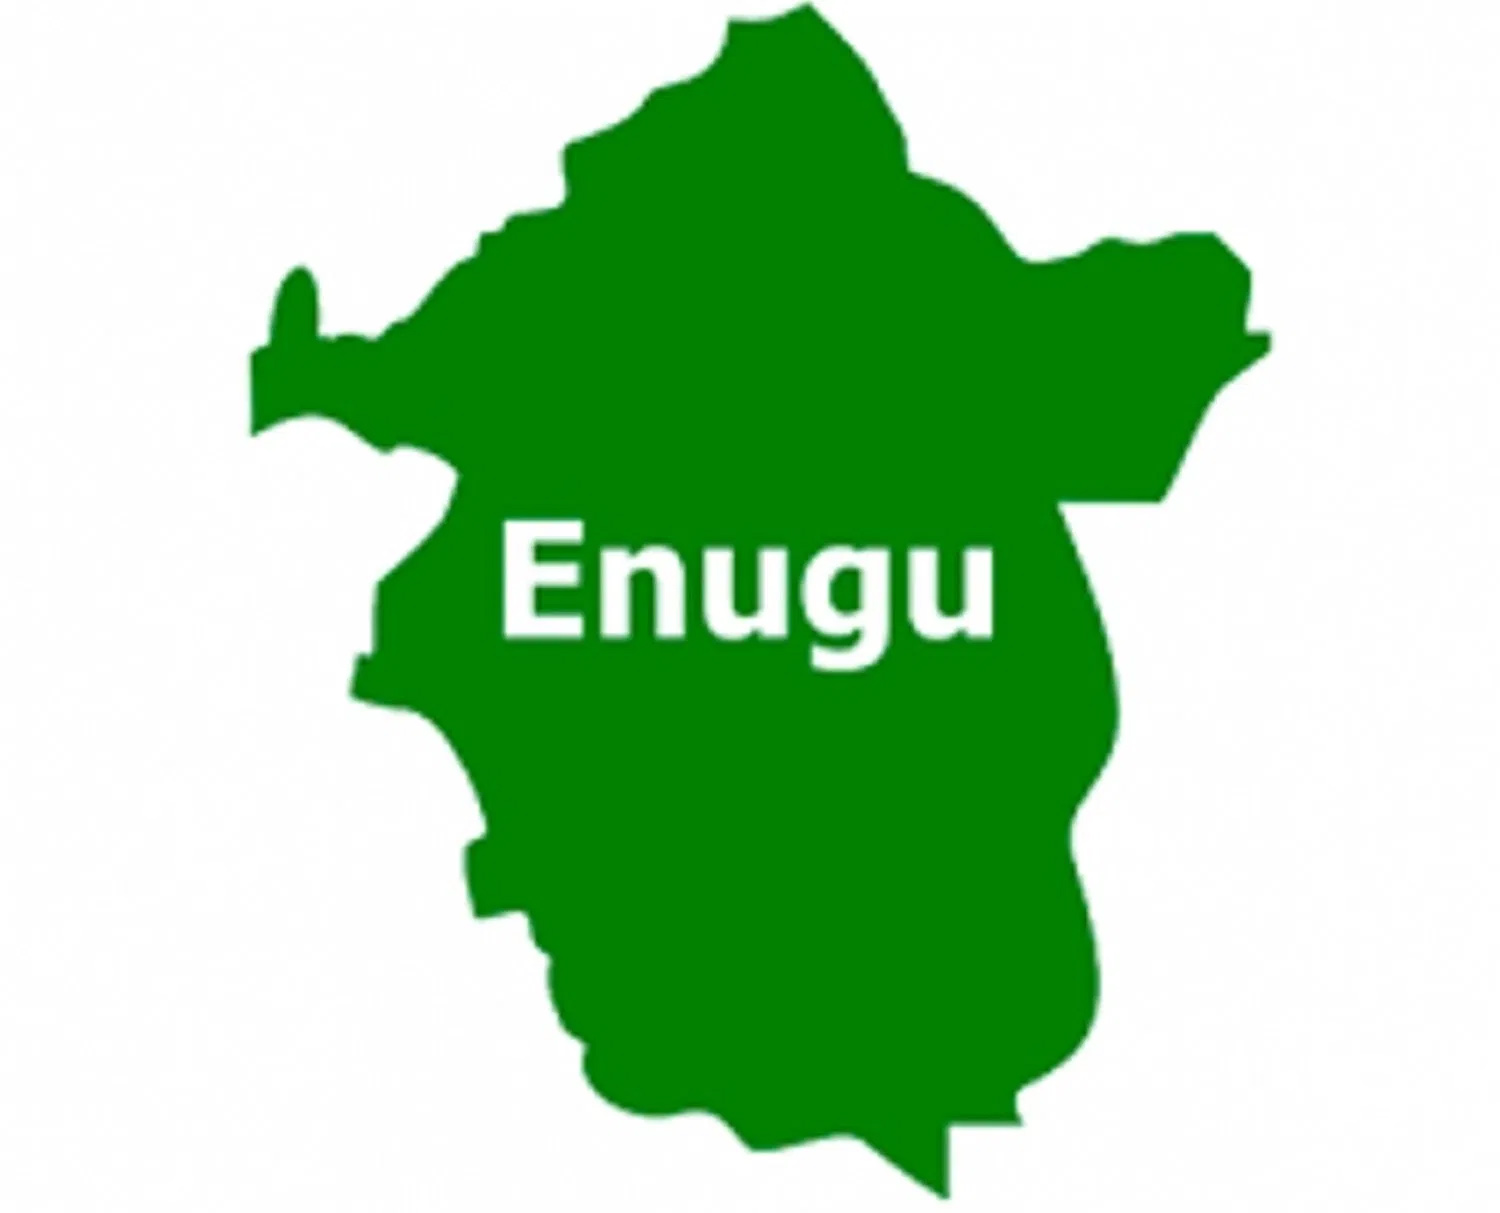 """No fewer than 301 patent medicine shops were sealed for various reasons by the Pharmacists Council of Nigeria (PCN)in Enugu State, its Registrar, Dr Elijah Mohammed has said. Mohammed disclosed this on Friday in Enugu while briefing newsmen after the council enforcement operations in the state. The Registrar was represented at the event by the Director, Enforcement of the council, Mr Stephen Esumobi. He said that 90 pharmacies were also sealed while six pharmacies and patent medicine shops were issued compliance directives during the enforcement exercise. He mentioned the offenses to include but not limited to operating without registration with PCN, failure to renew premises license and dispensing ethical products without supervision of a pharmacist. Others are poor storage and sanitary conditions among others. Mohammed said that a total of 524 premises comprising 159 pharmacies and 365 patent medicine shops were visited during the operation. """"Members of the public are advised to purchase their medicines from licensed pharmacies and and simple household remedies from licensed patent and propriety medicines vendor shops respectively. """"Those intending to start pharmaceutical businesses should get in touch with the PCN head office, state and zonal offices for guidance,"""" he said. He said that the Enugu State office of the PCN was doing everything to assist owners of premises who were ready to comply with regulations. The registrar said that facilities that qualified for registration as patent medicine stores would be registered and their owners trained on how to handle simple household medicines. """"Subsequently, they will undergo continuous education every two years,"""" he said. He said that the PCN enforcement team had been in the state since the beginning of the week. Mohammed named the existence of unregistered medicine shops as one major factor militating against rational distribution and use of medicines in the country. """"Most of these facilities are operated by trade"""